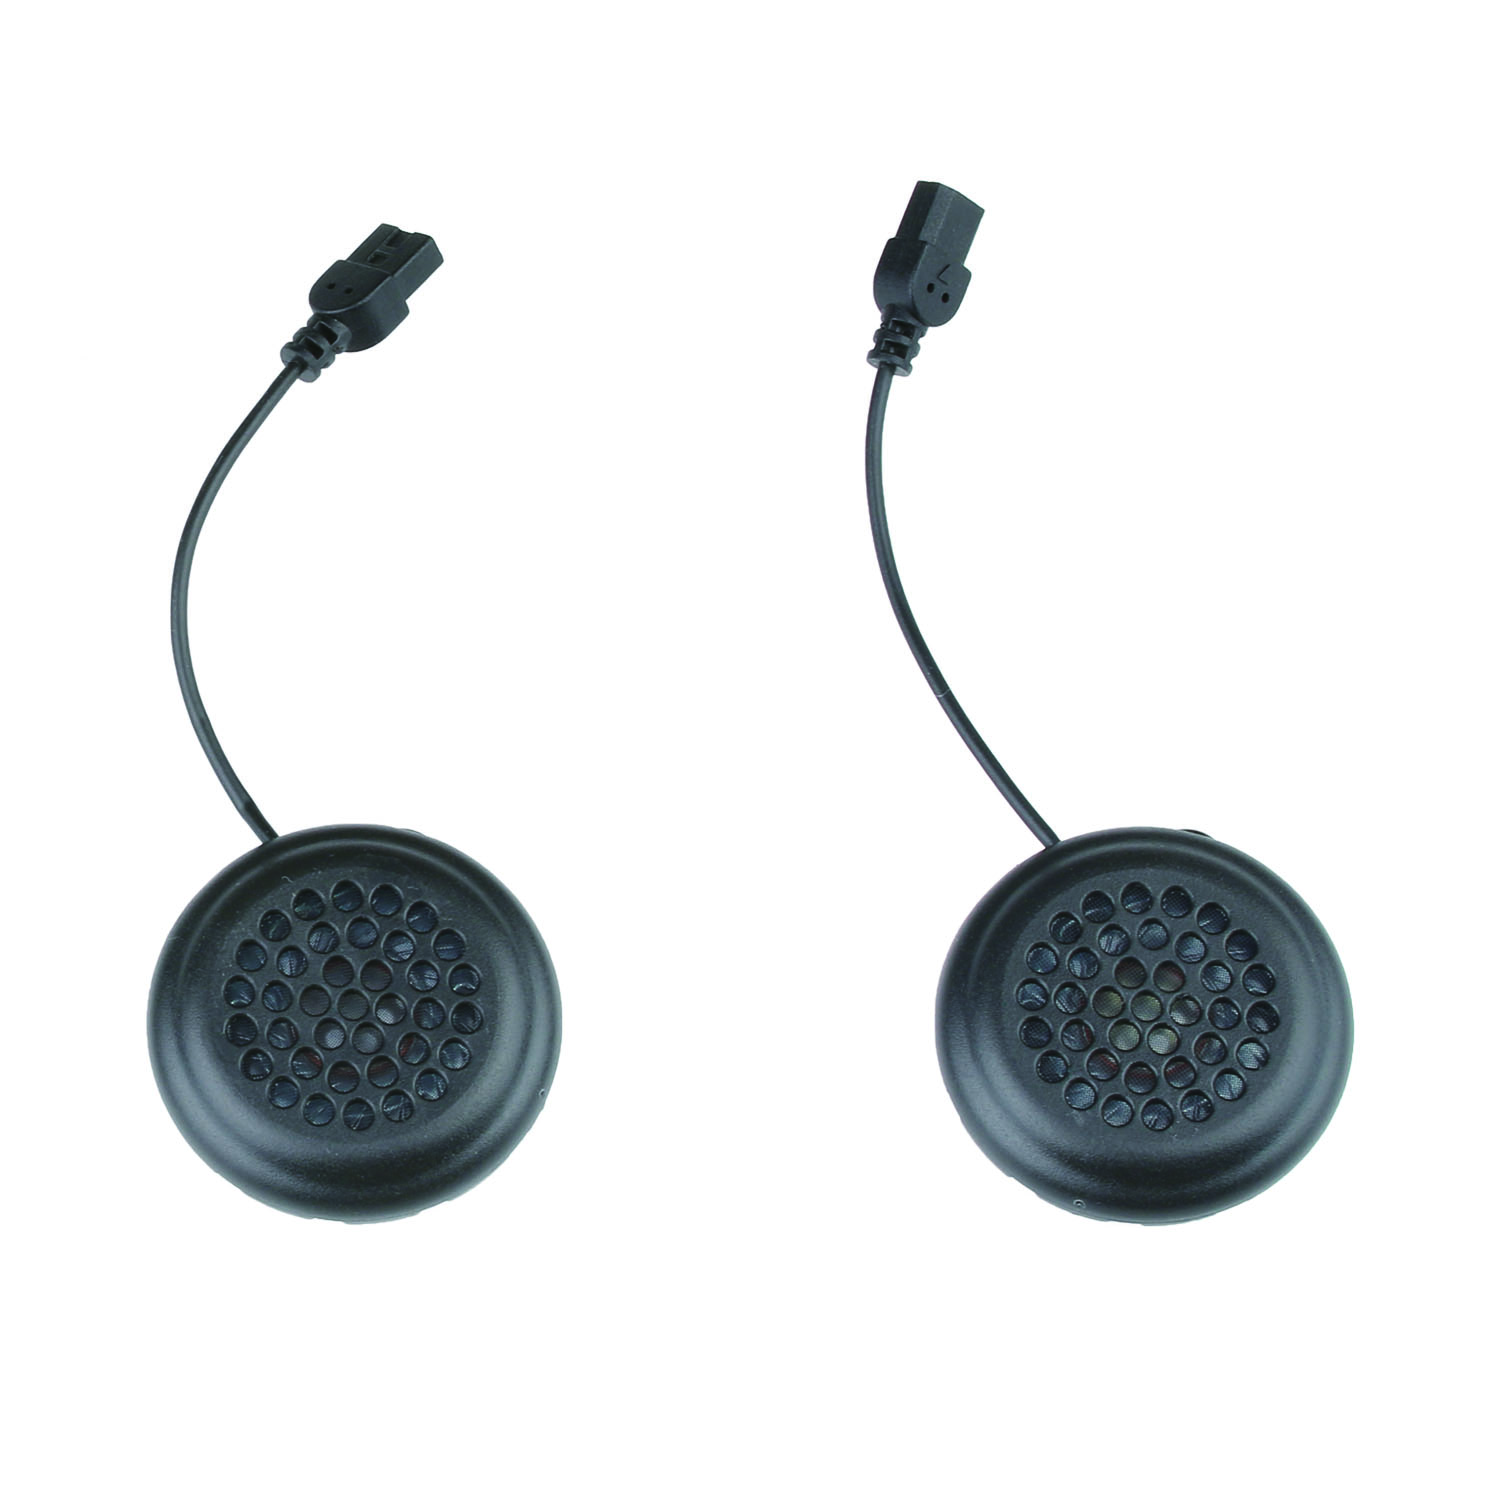 Microphone & Headset For EJEAS E6 Interphone Helmet Intercom